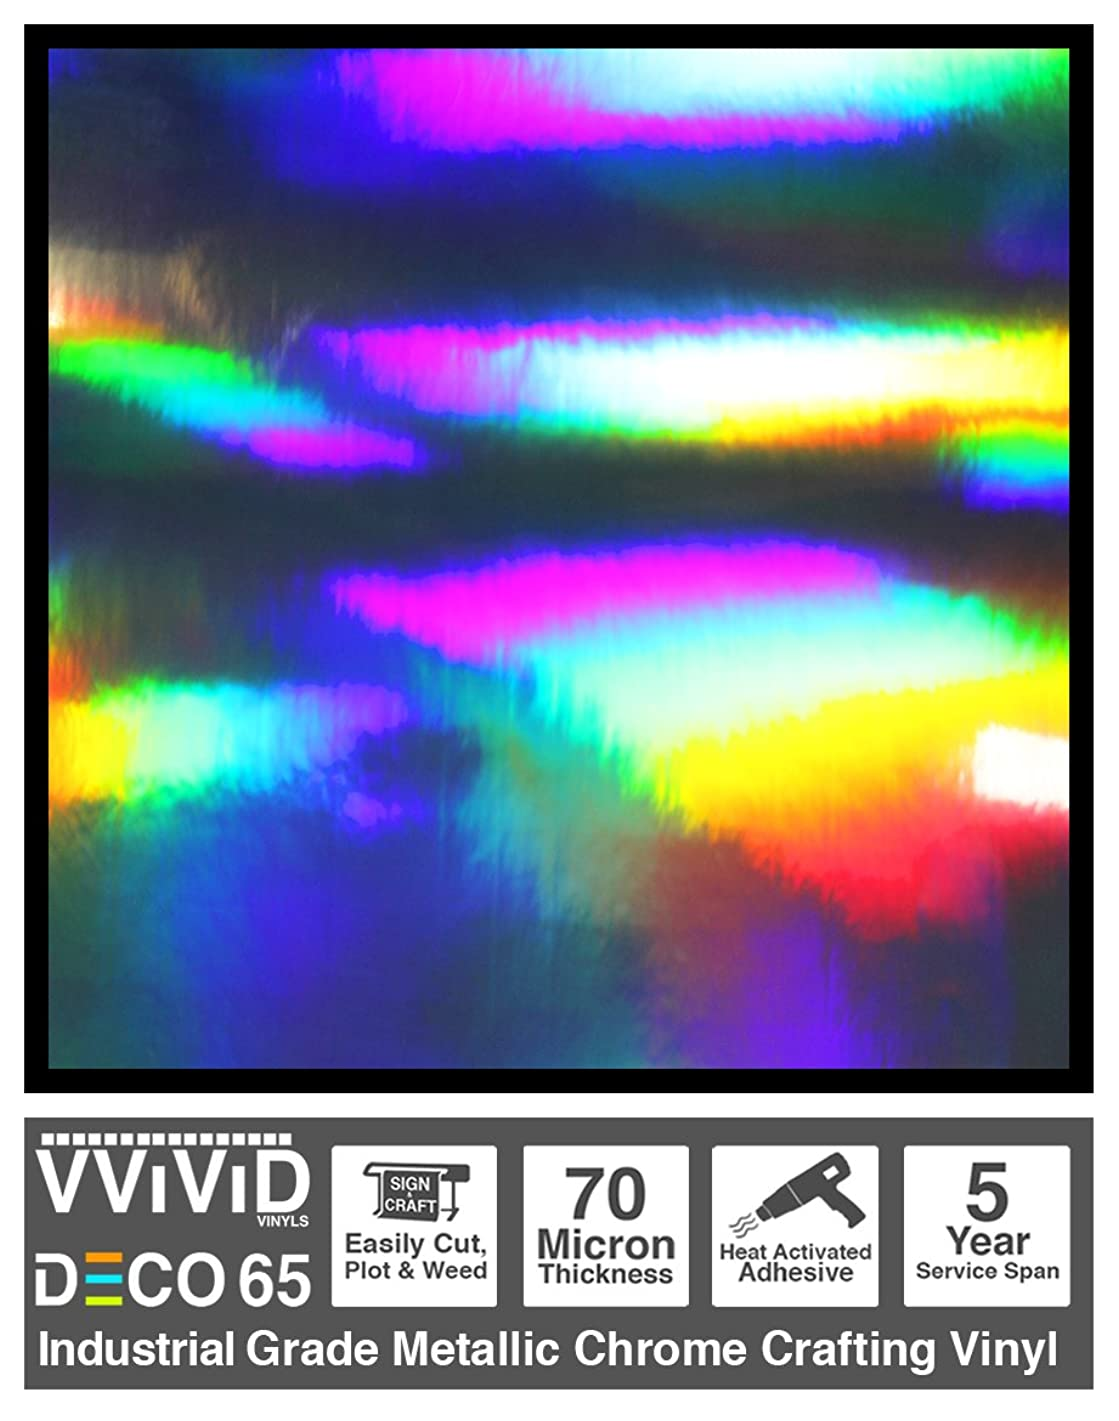 VViViD DECO65 Rainbow Lazer Metallic Chrome Adhesive Vinyl 6ft x 1ft Craft Roll for Die-Cutter and Plotting Machines